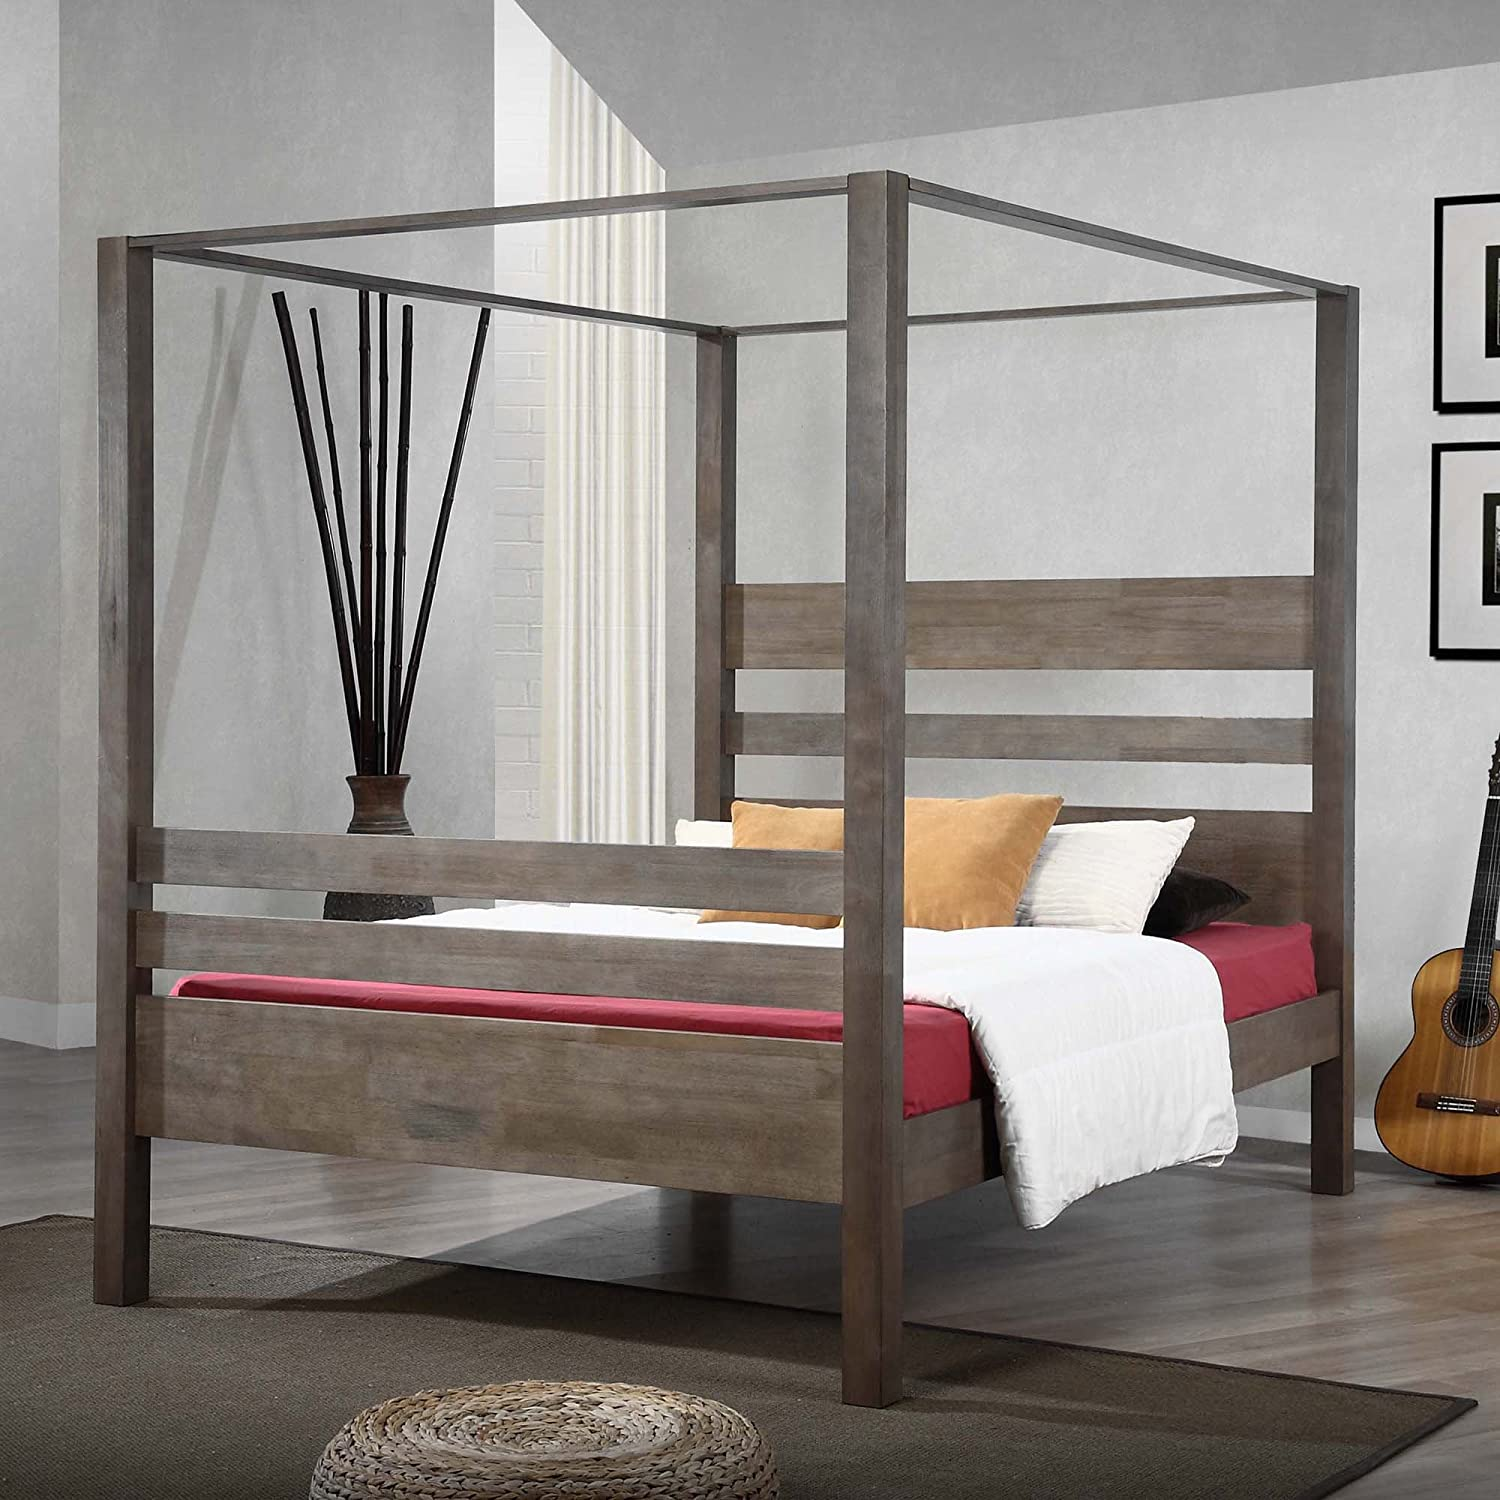 Amazon.com Metro Shop Marion Charcoal Grey Queen Canopy Bed-Marion Canopy Bed Queen Kitchen u0026 Dining & Amazon.com: Metro Shop Marion Charcoal Grey Queen Canopy Bed ...